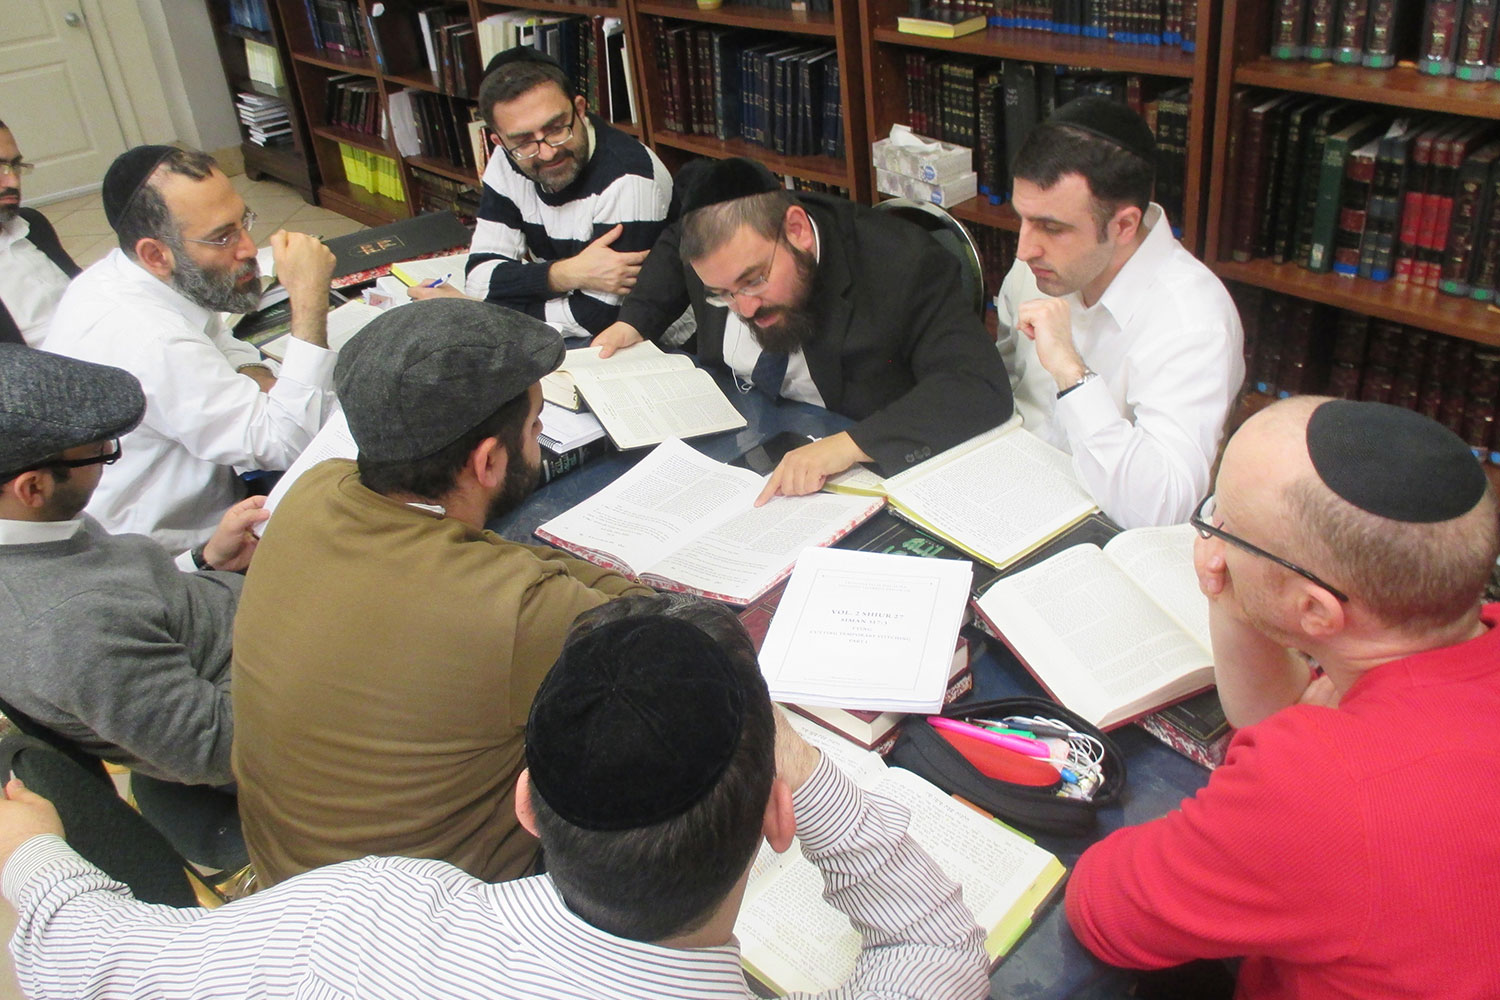 Rosh Chabura Rabbi Lebhar giving shiur